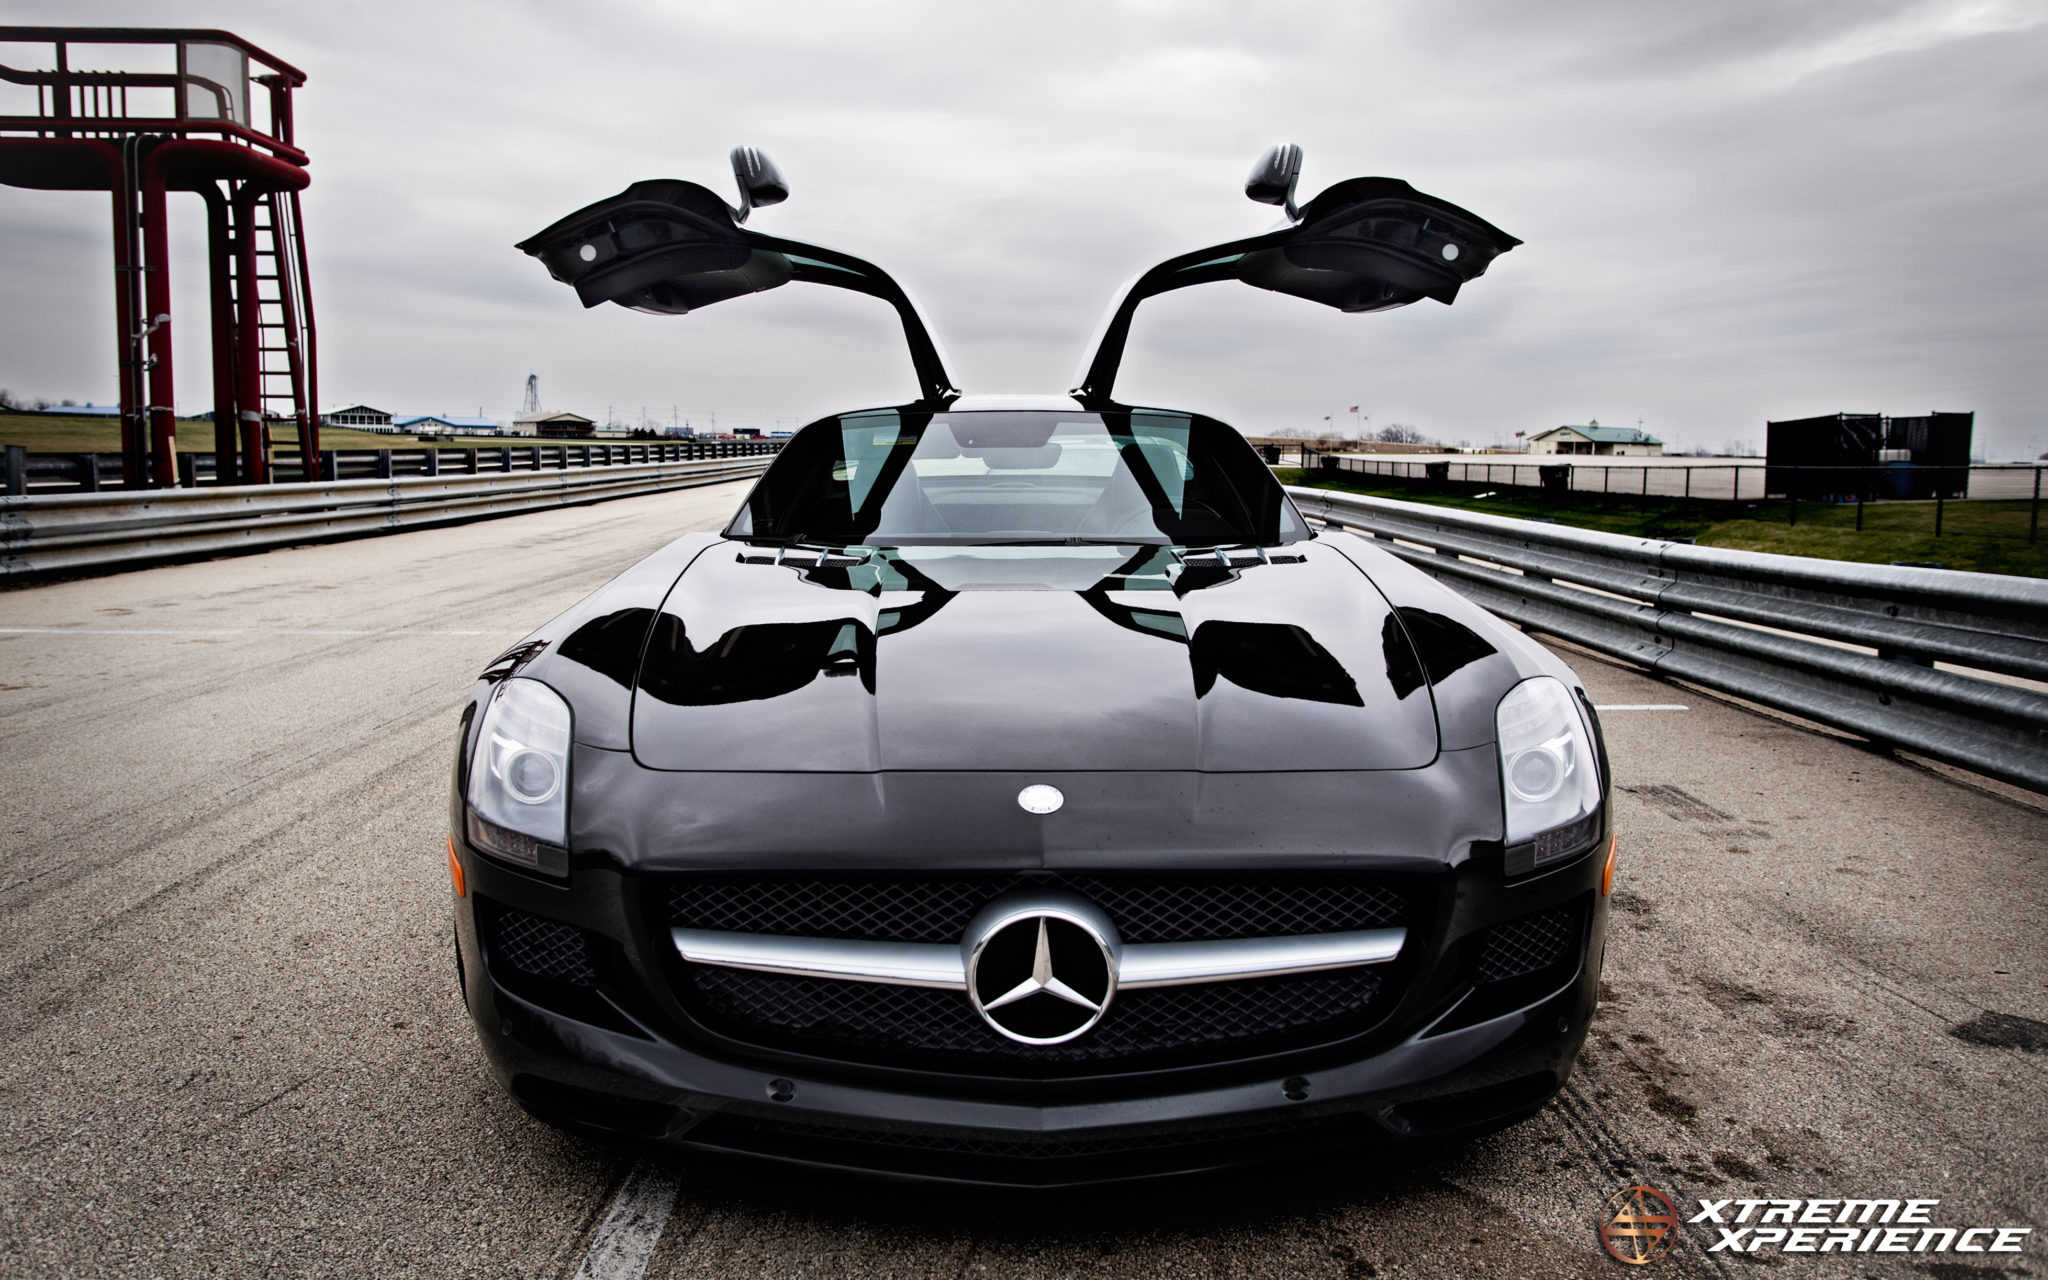 All In One Super Cars Wallpapers Mercedes Benz Sls Amg Wallpaper Xtreme Xperience